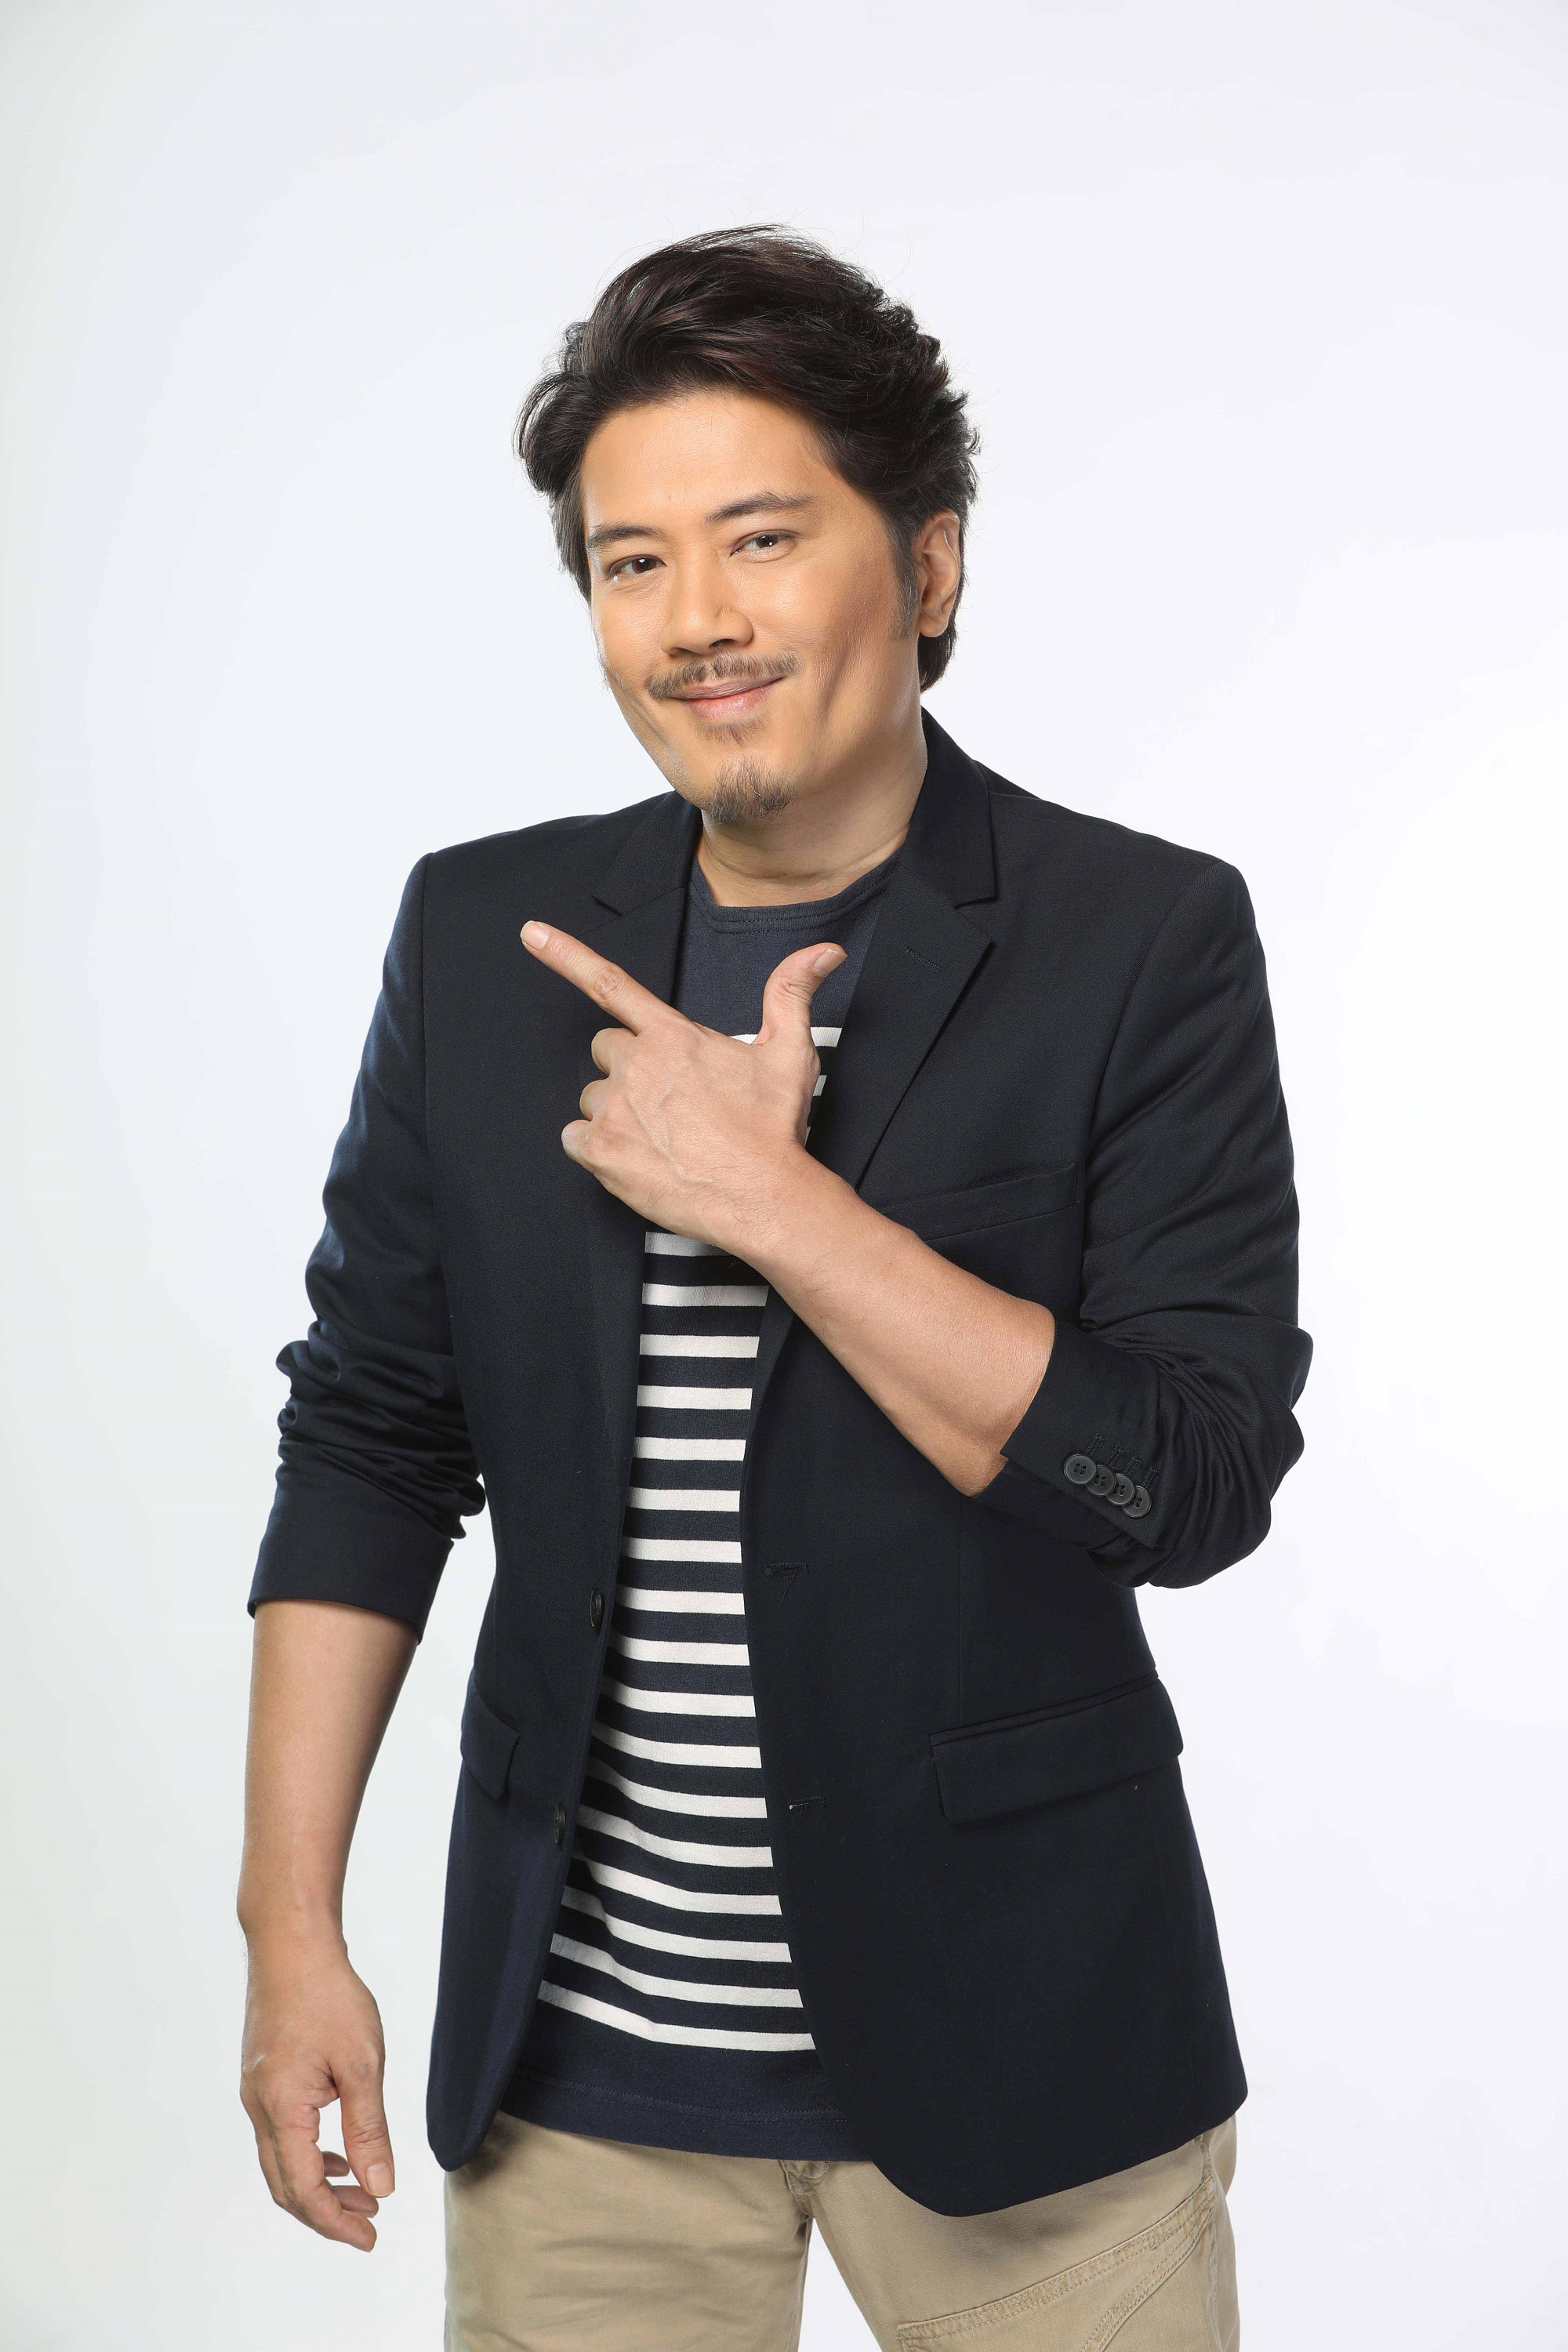 Janno Gibbs returns to comedy after signing with Viva